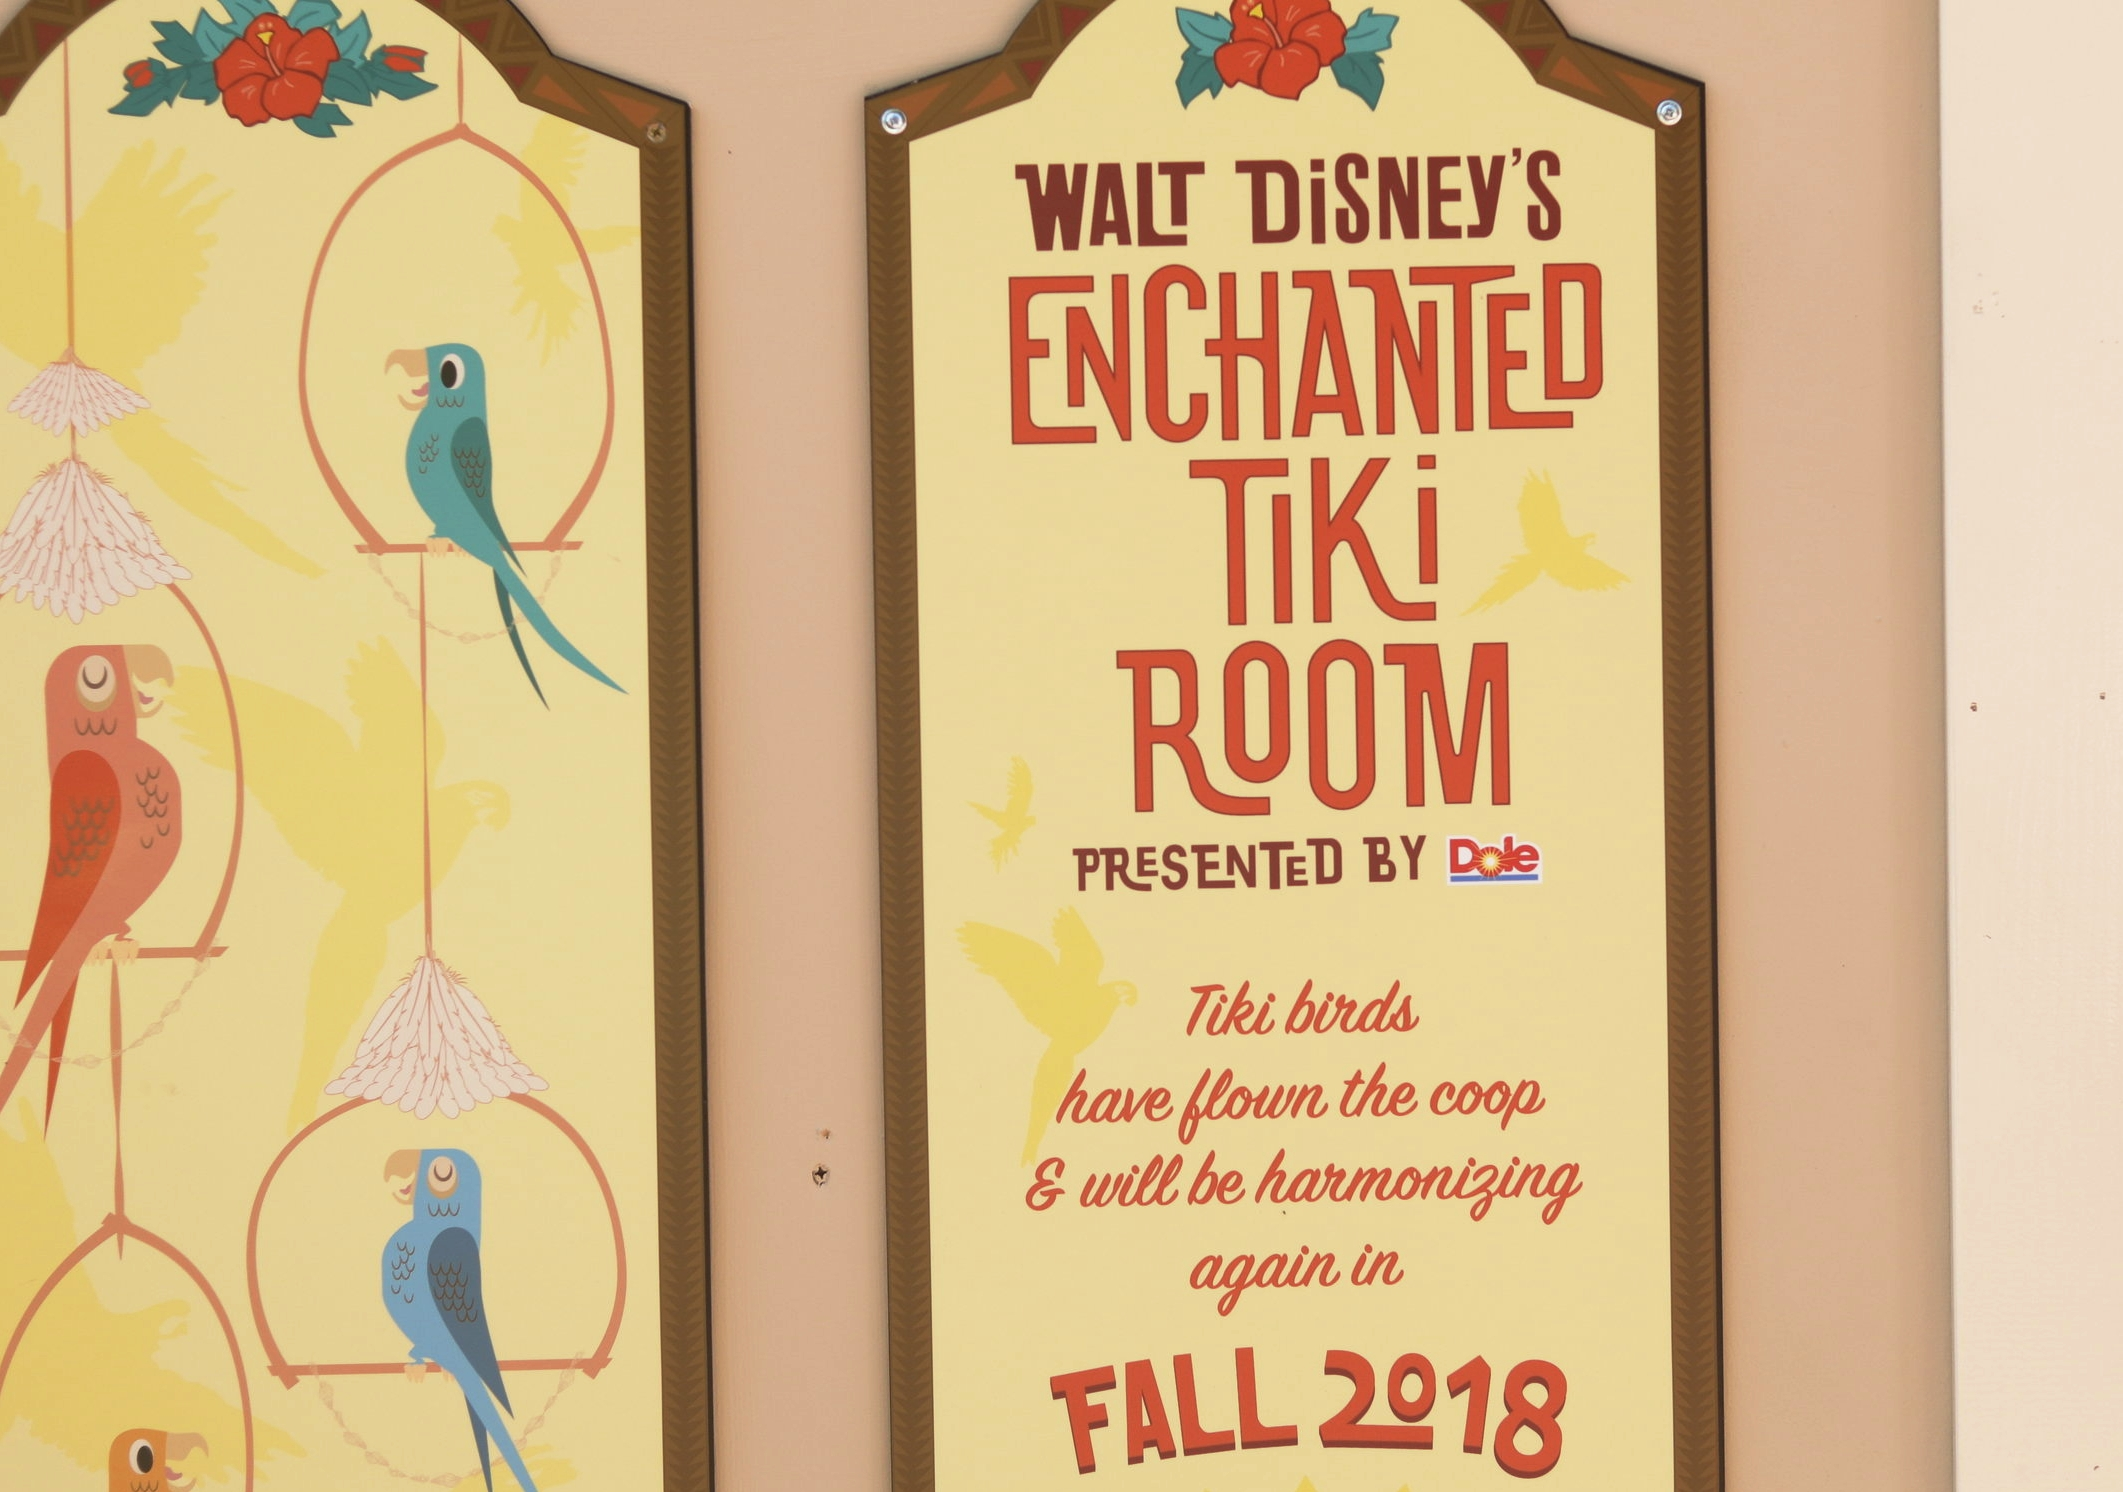 Tiki Room Reopening Fall 2018